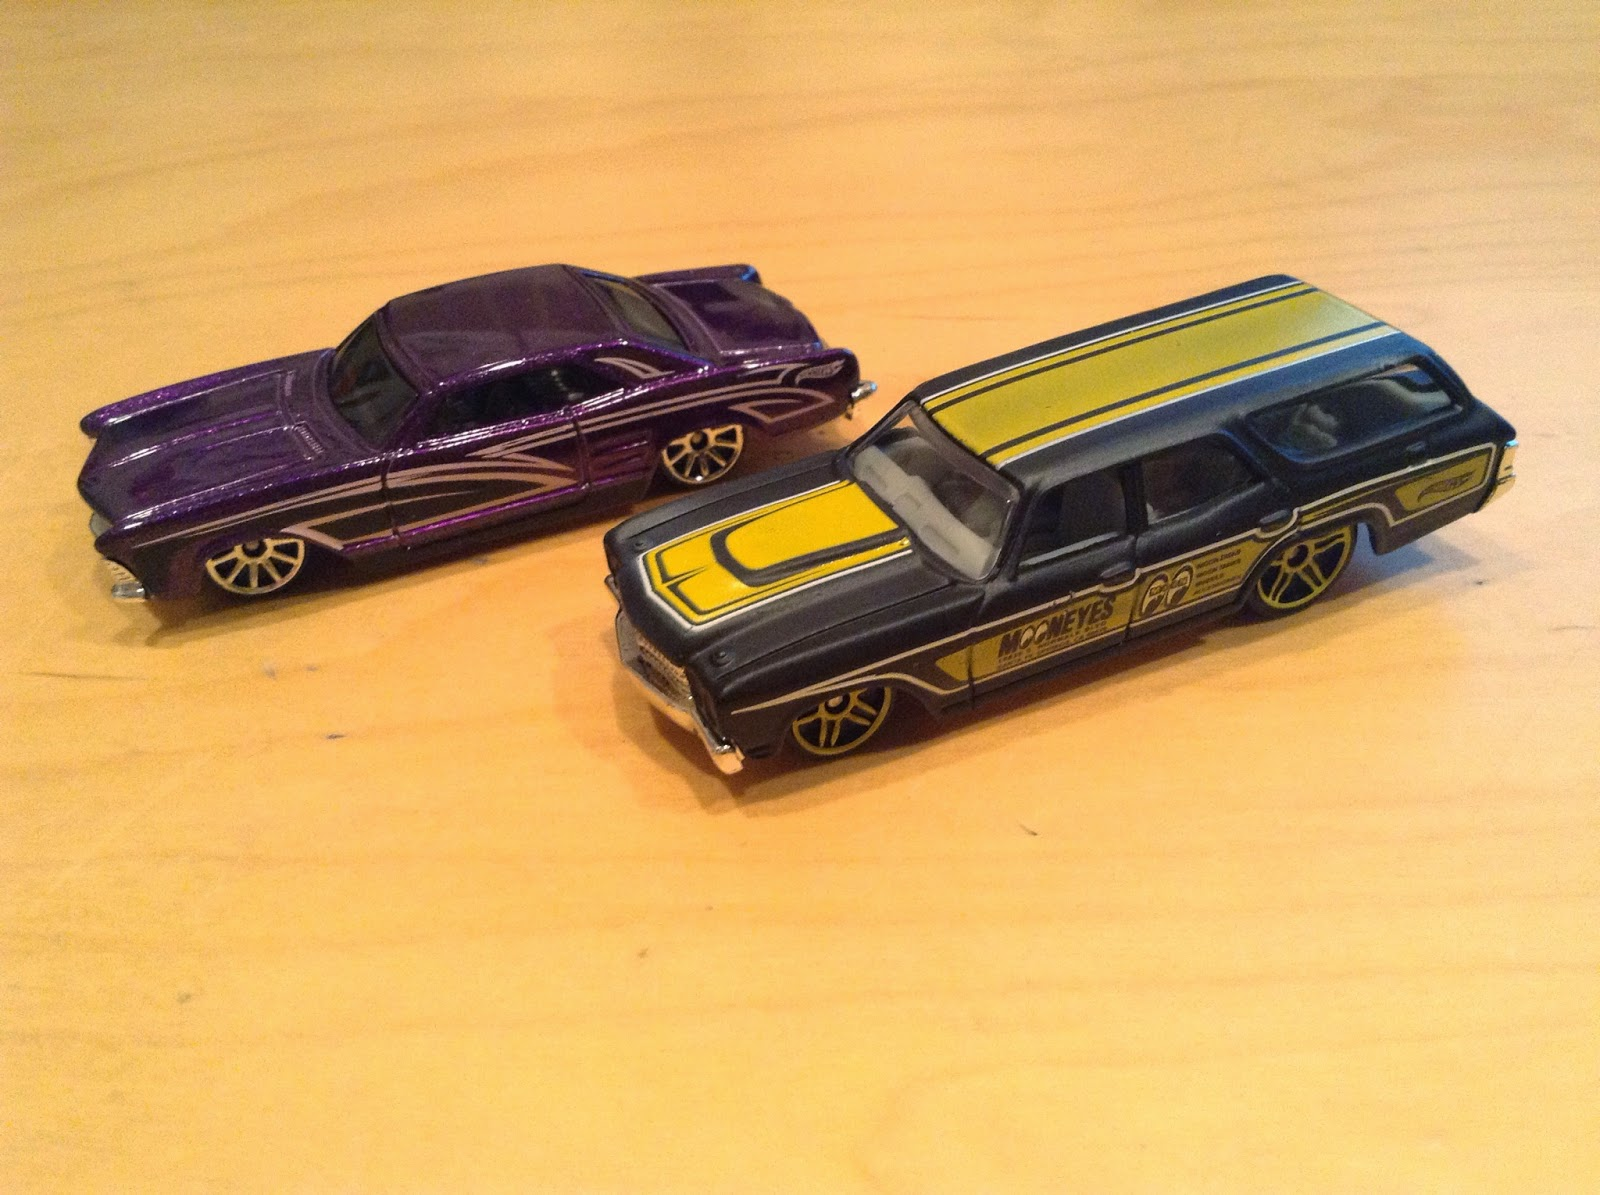 julian's hot wheels blog: '64 buick riviera & '70 chevelle ss wagon